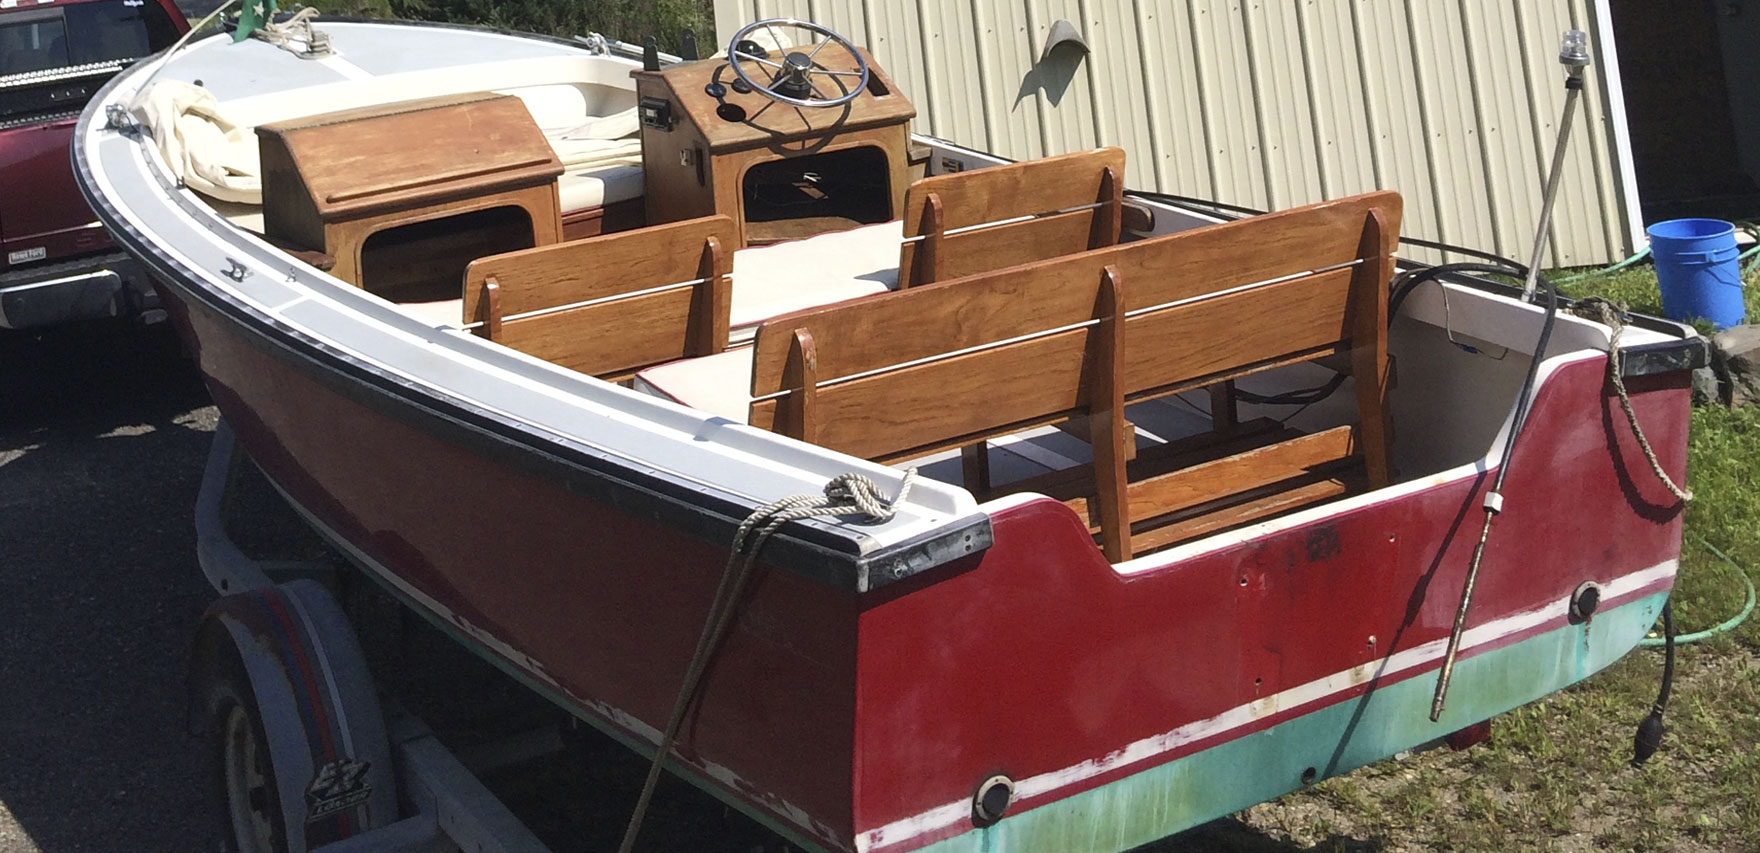 Ellis Boat For Sale: Ellis 20 Open Fisherman